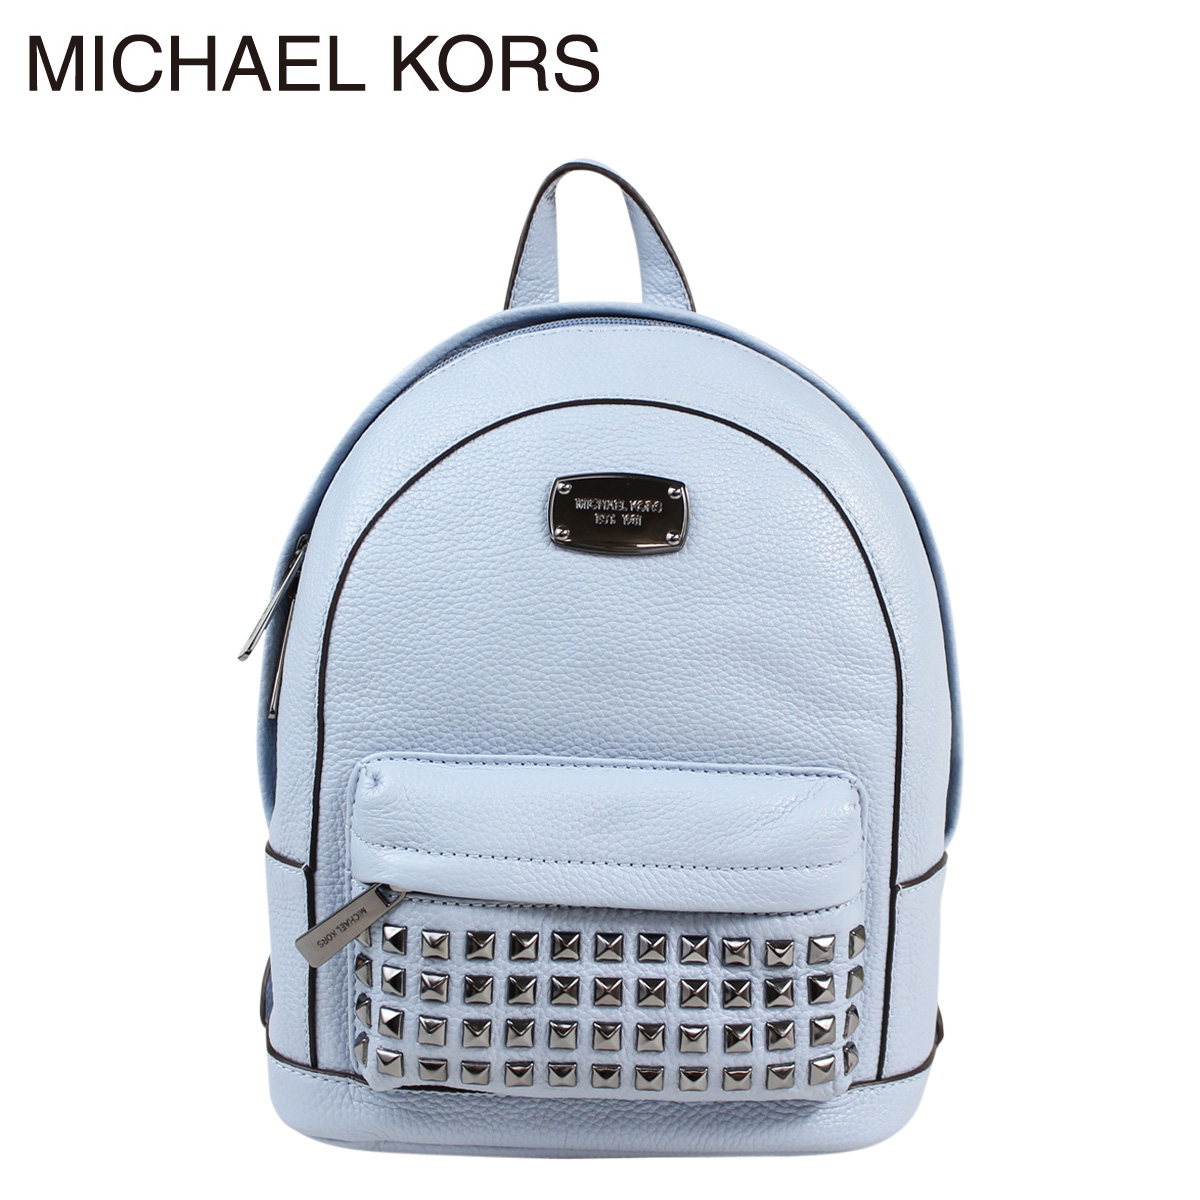 MICHAEL KORS Michael Kors rucksack backpack 35T6TTTB5L pale blue ladies [8/2 new in stock]